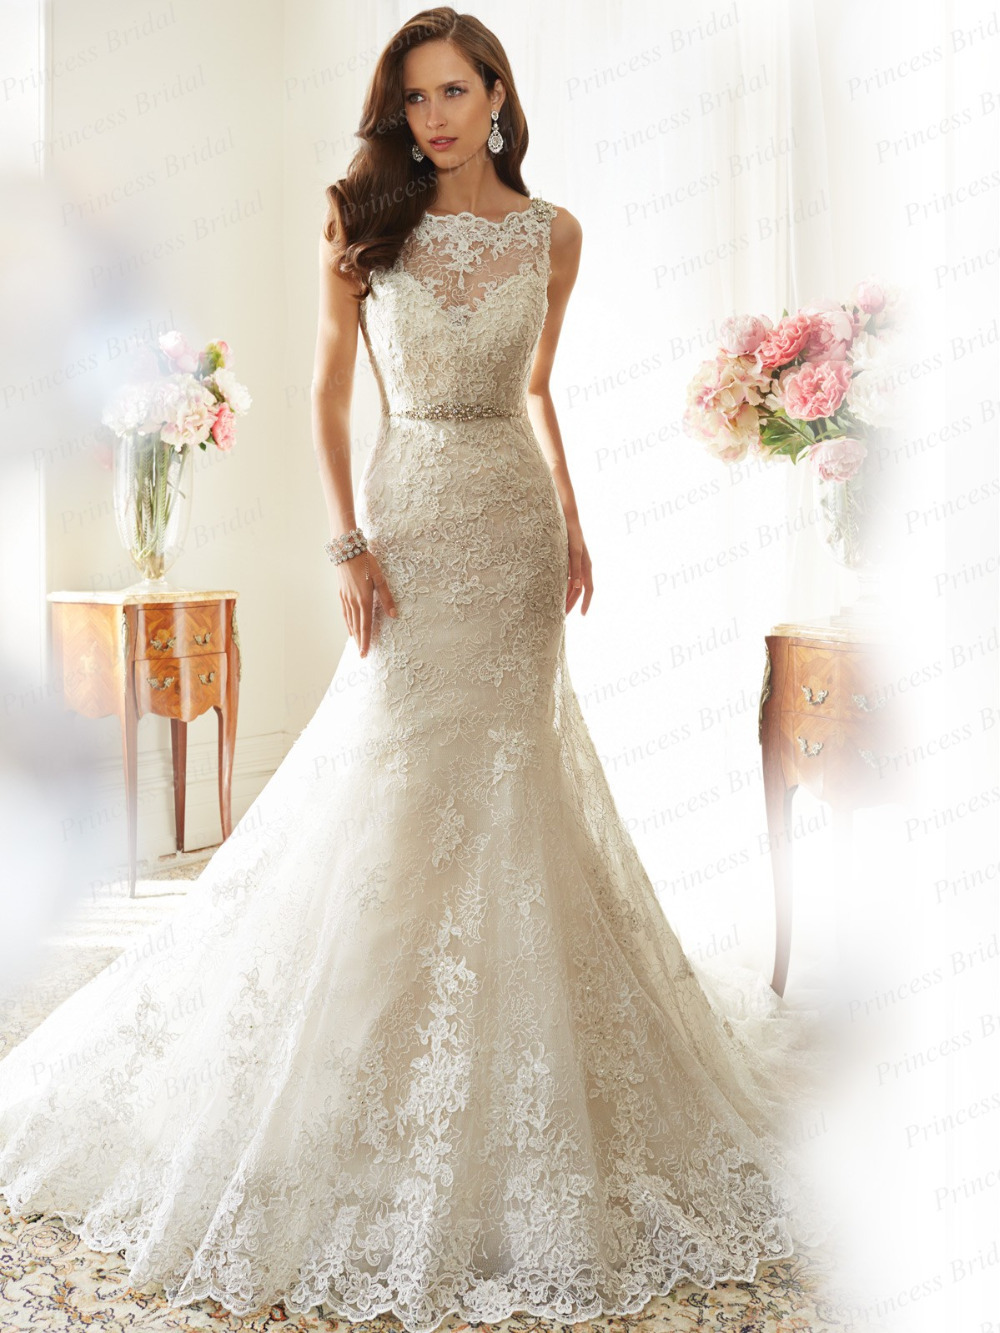 Fishtail Wedding Dress With Train : Train lace appliques wedding dress y in dresses from